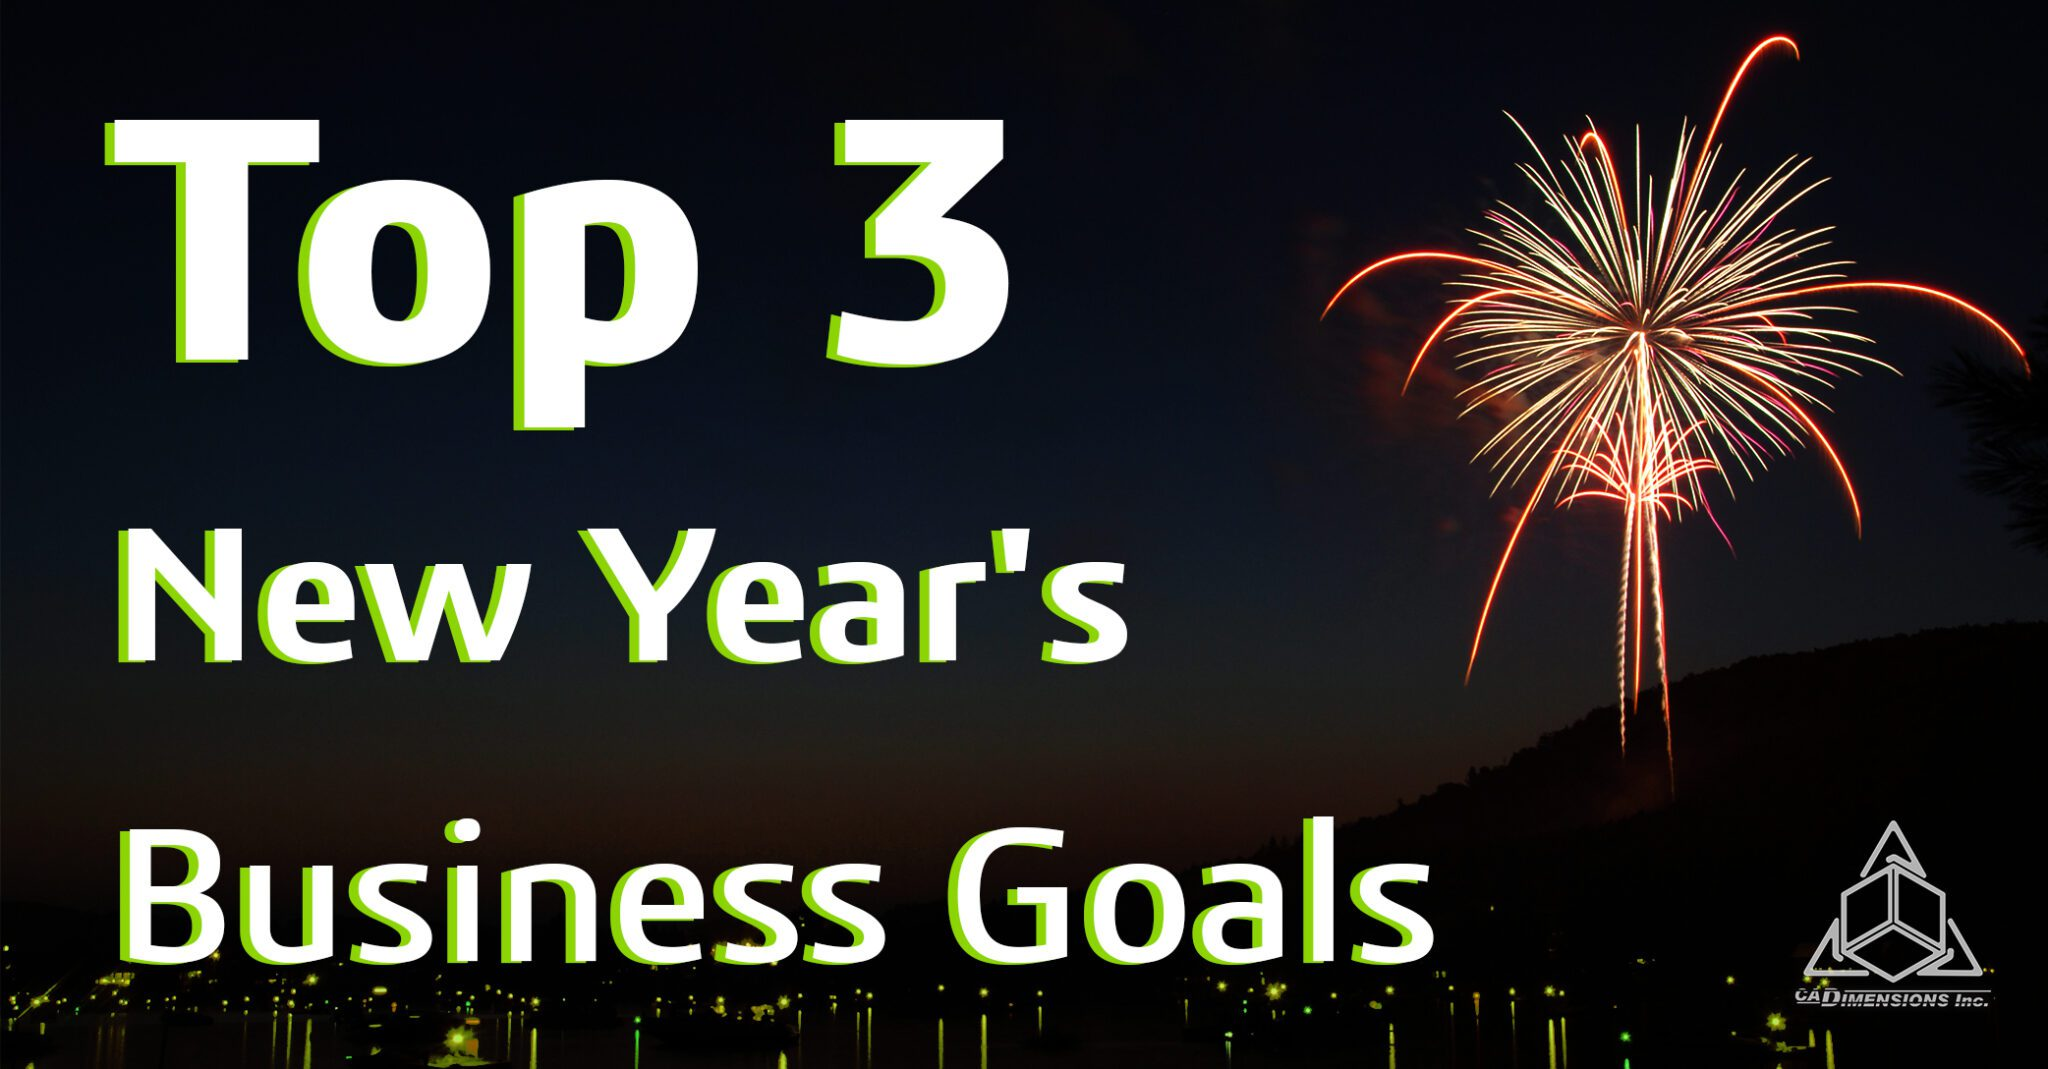 Top 3 New Years Business Goals from cadimensions